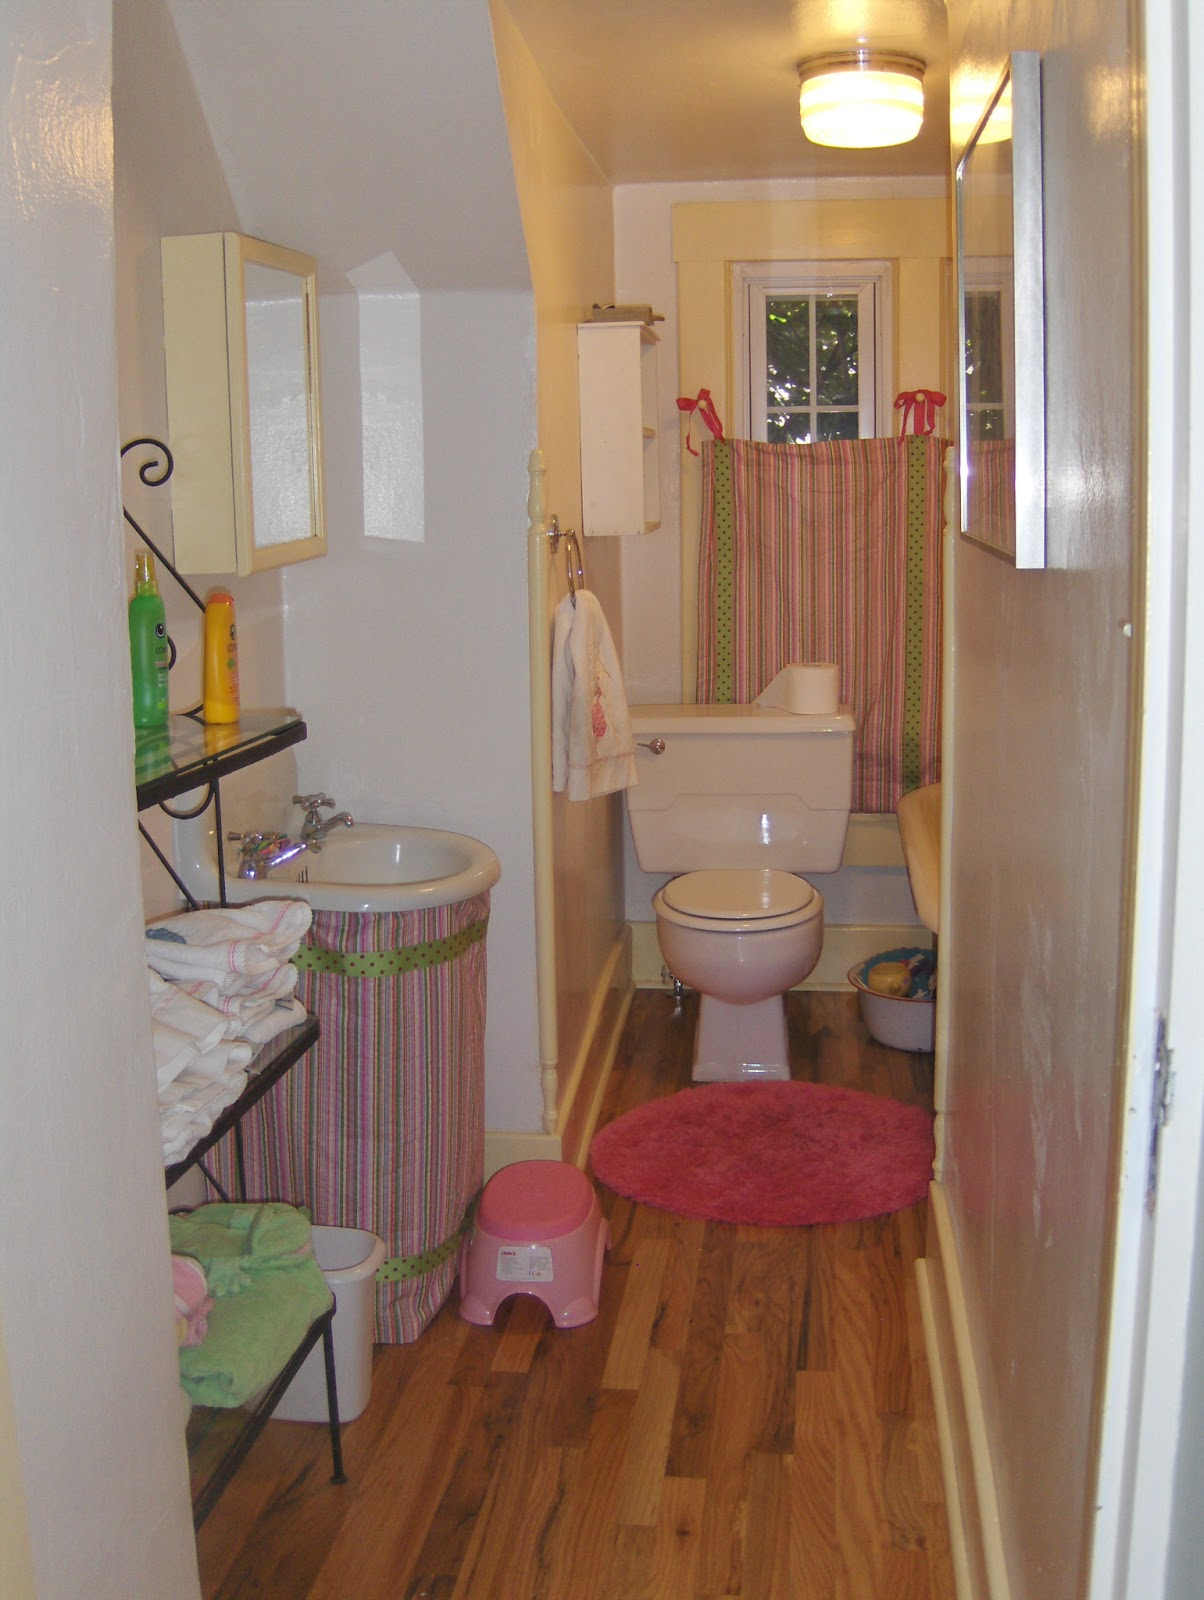 A Marmie Life: Very Small Bathroom Remodel